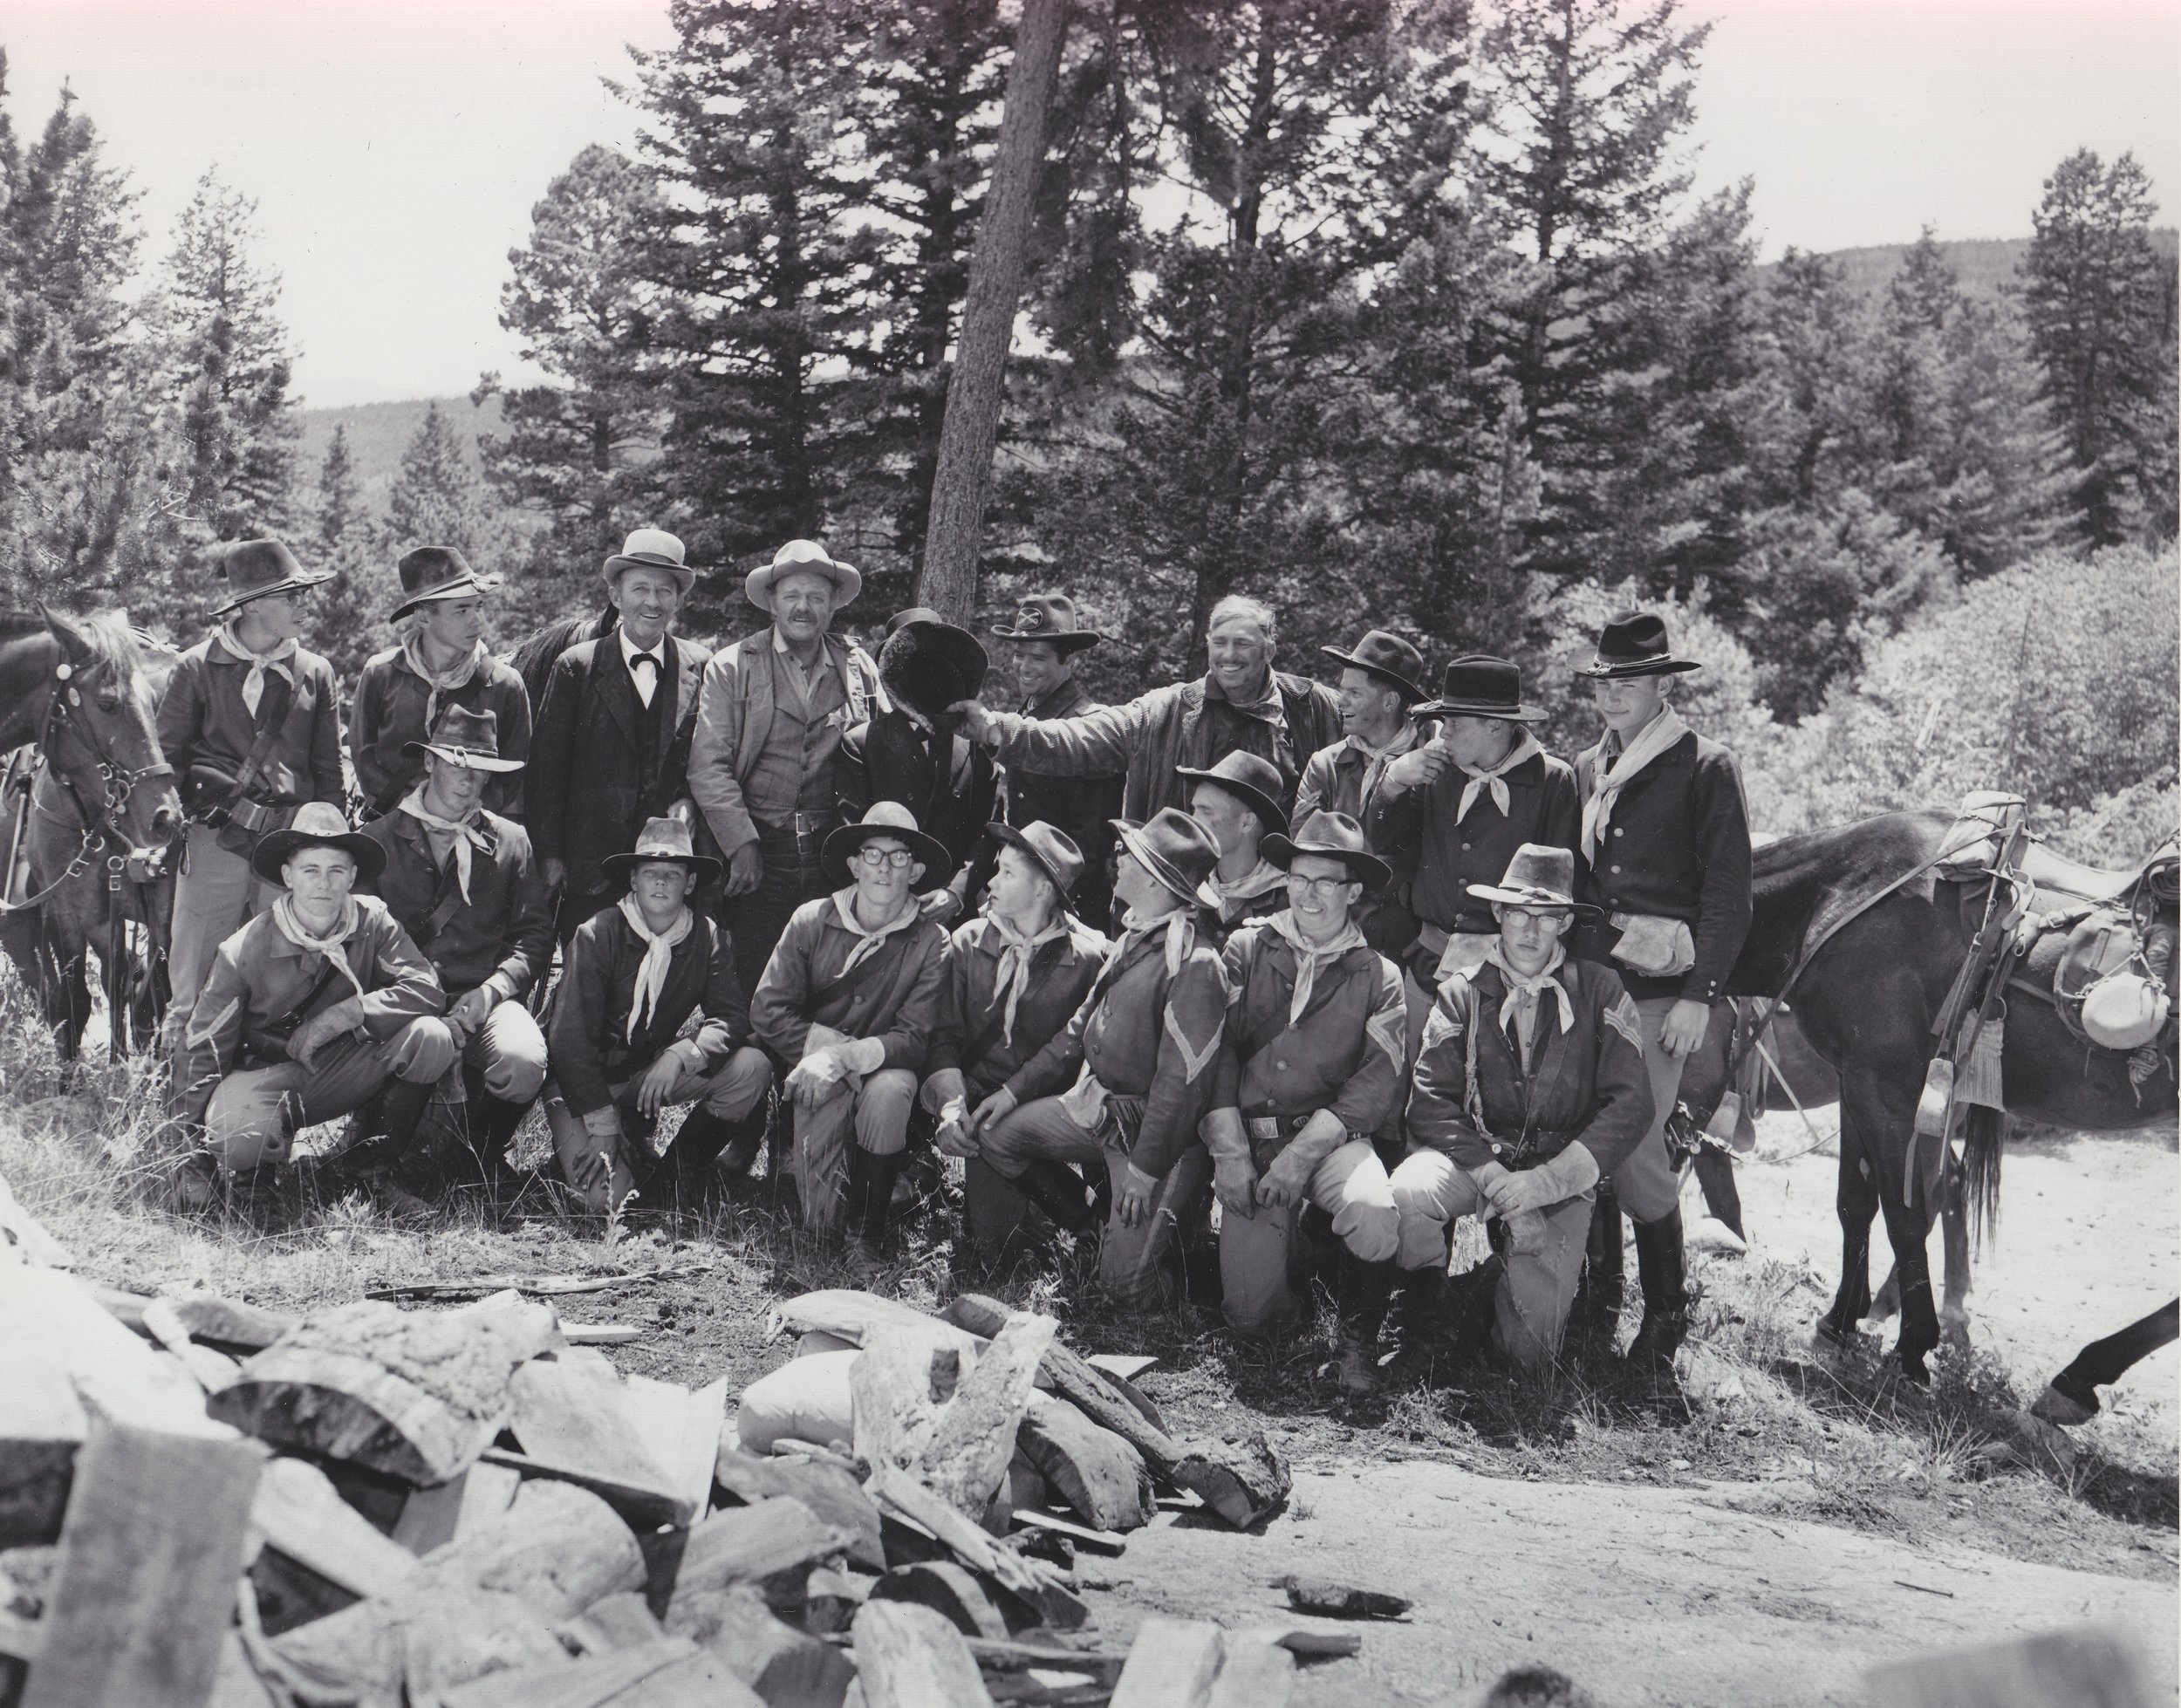 The Westernaires Cavalry team takes a break from shooting  Stagecoach  (1966).  Centered in the top row, the stars (left to right) are: Bing Crosby, Van Heflin, Red Buttons (with his face covered), Joseph Hoover, and Slim Pickens (clowning around).